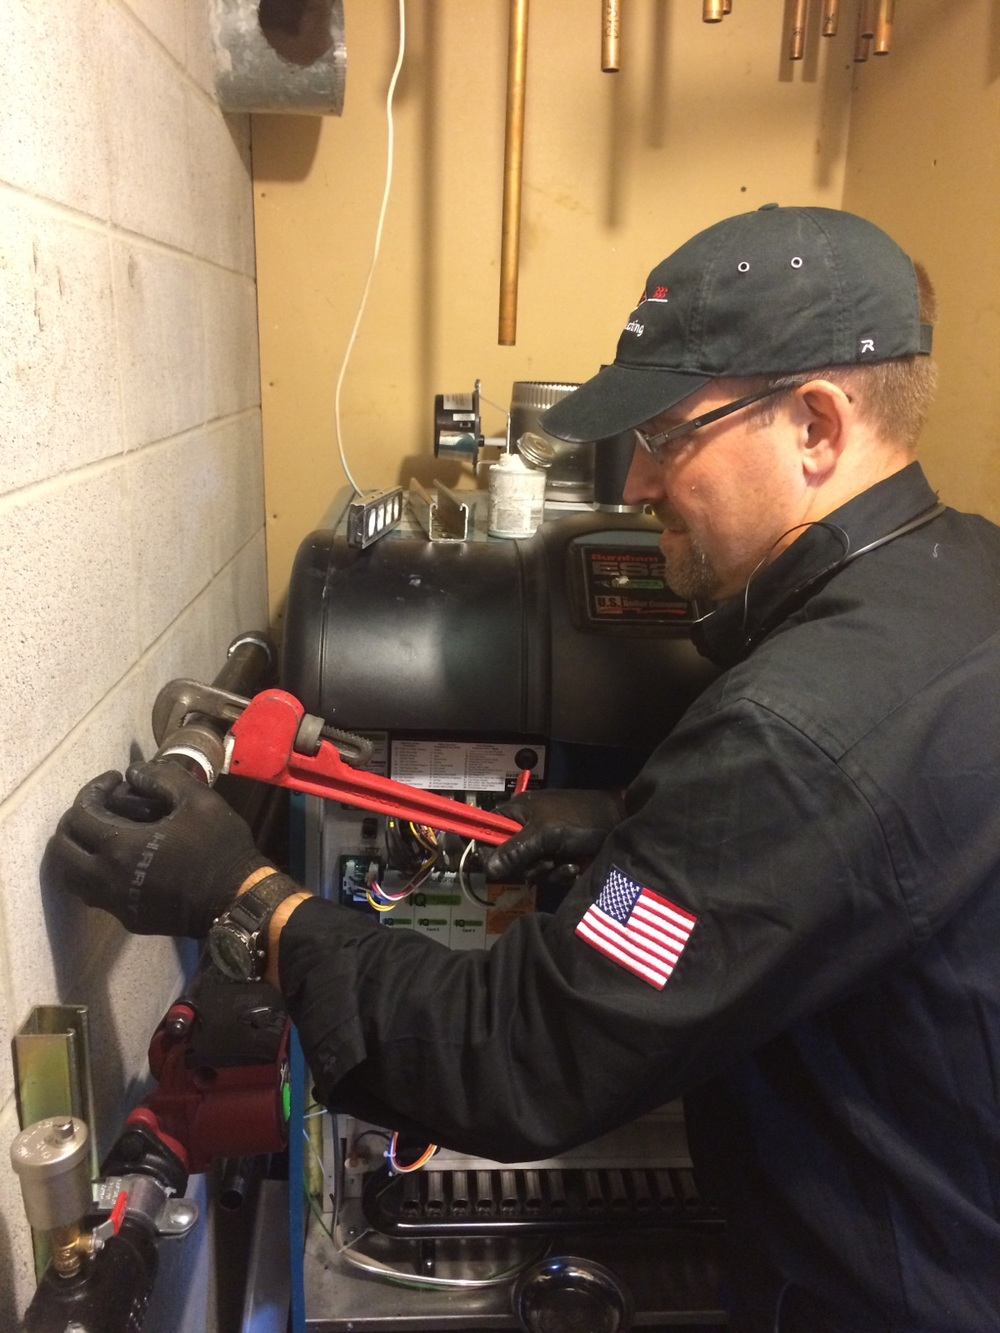 PJ's Service Technician working on a boiler